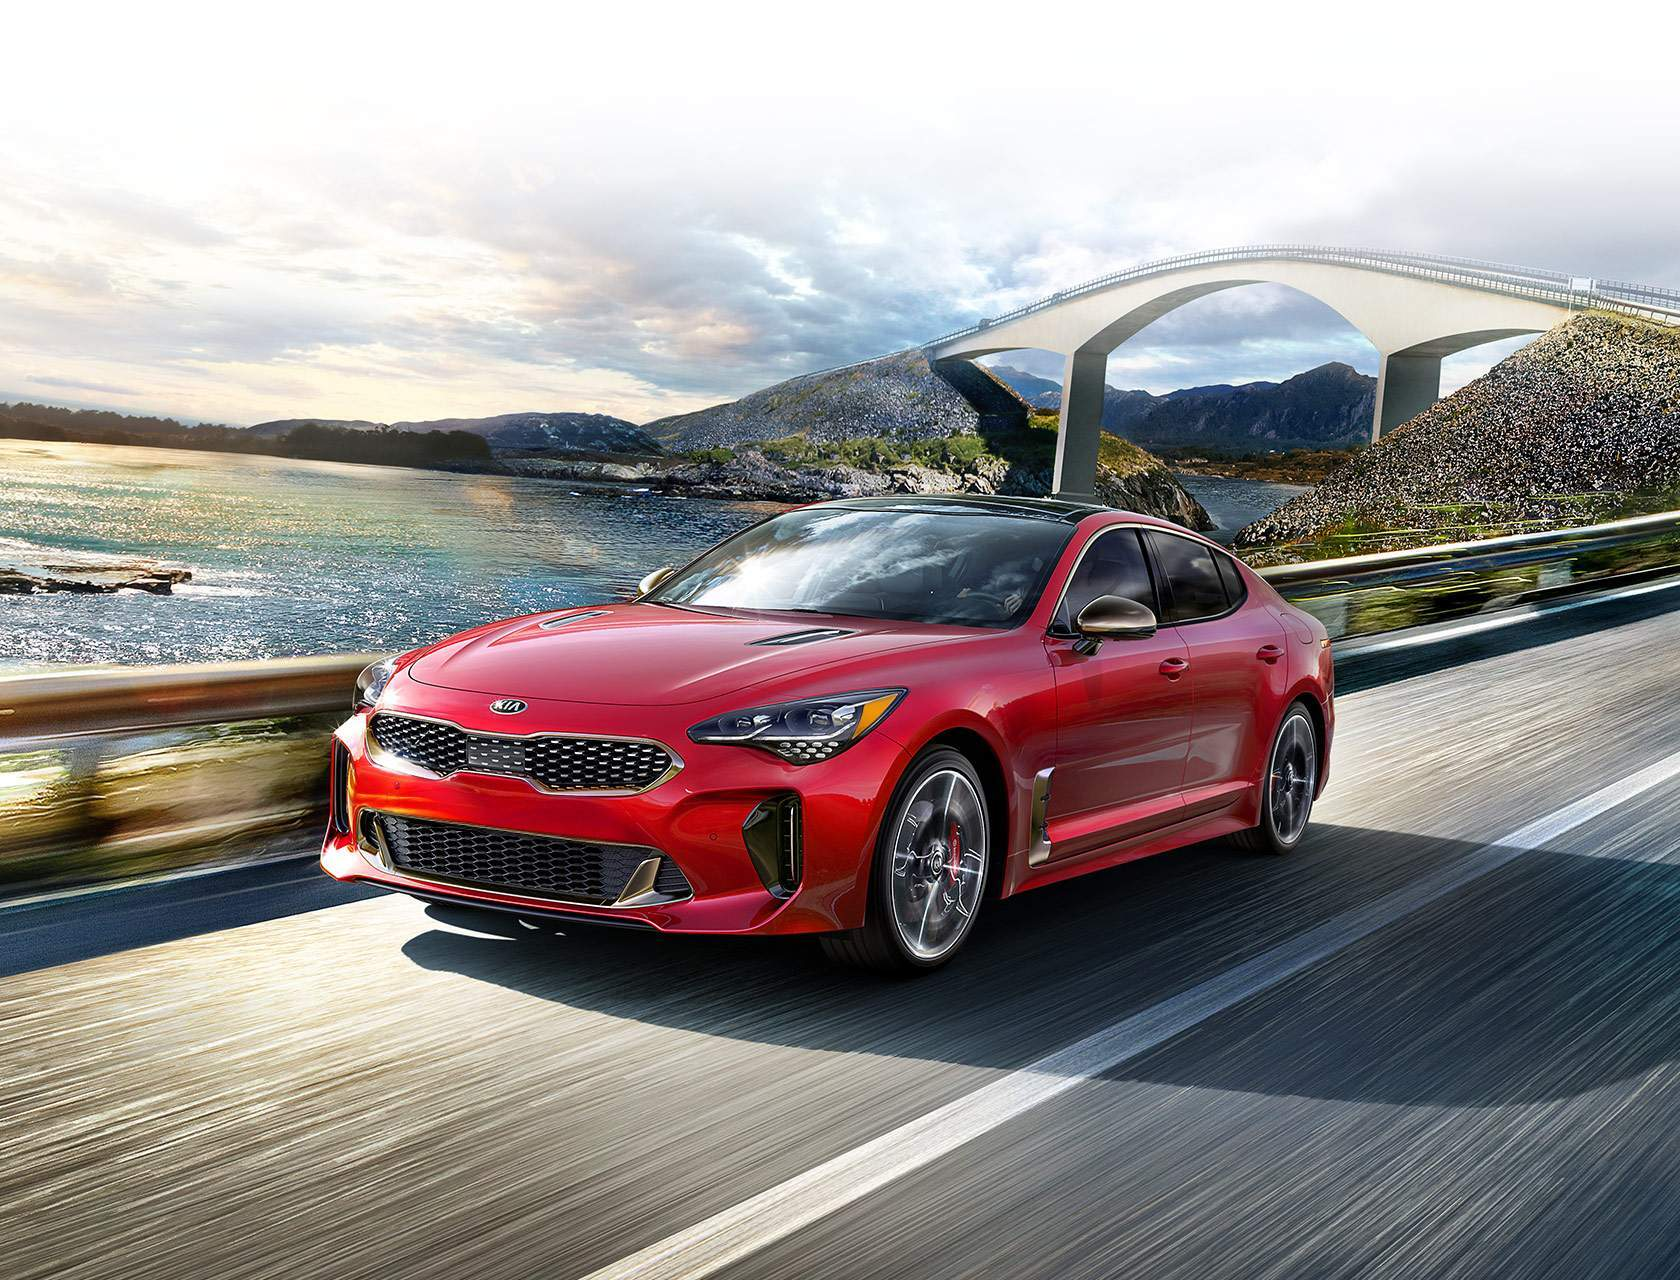 2018 Kia Stinger in Warrington, PA